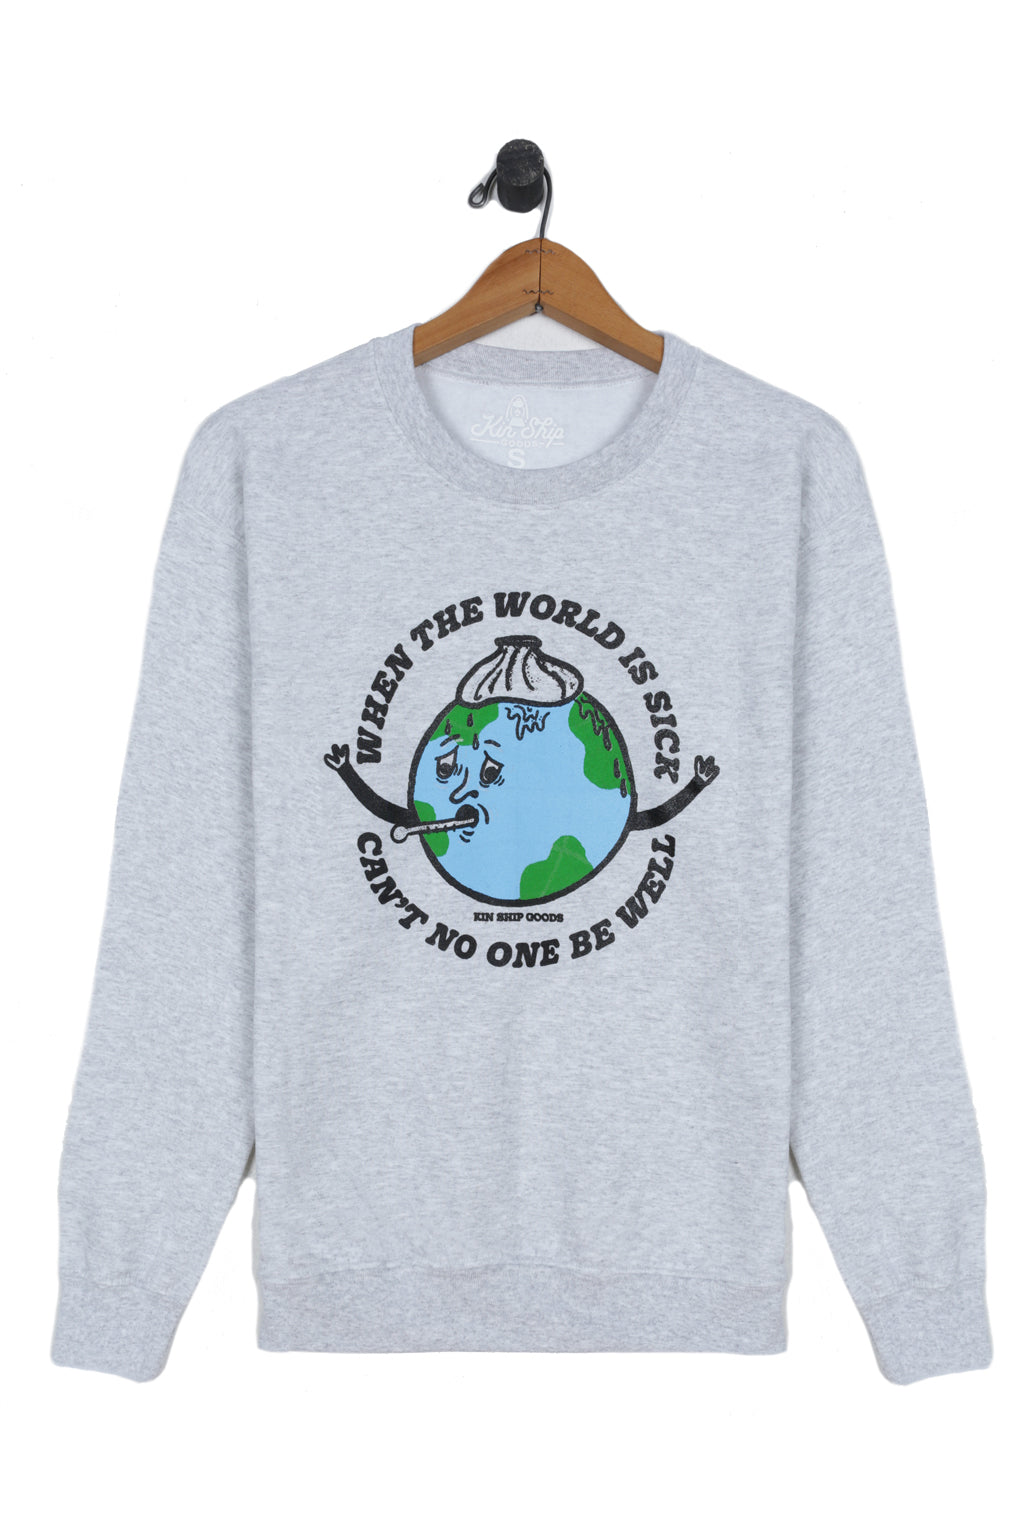 be well sweatshirt